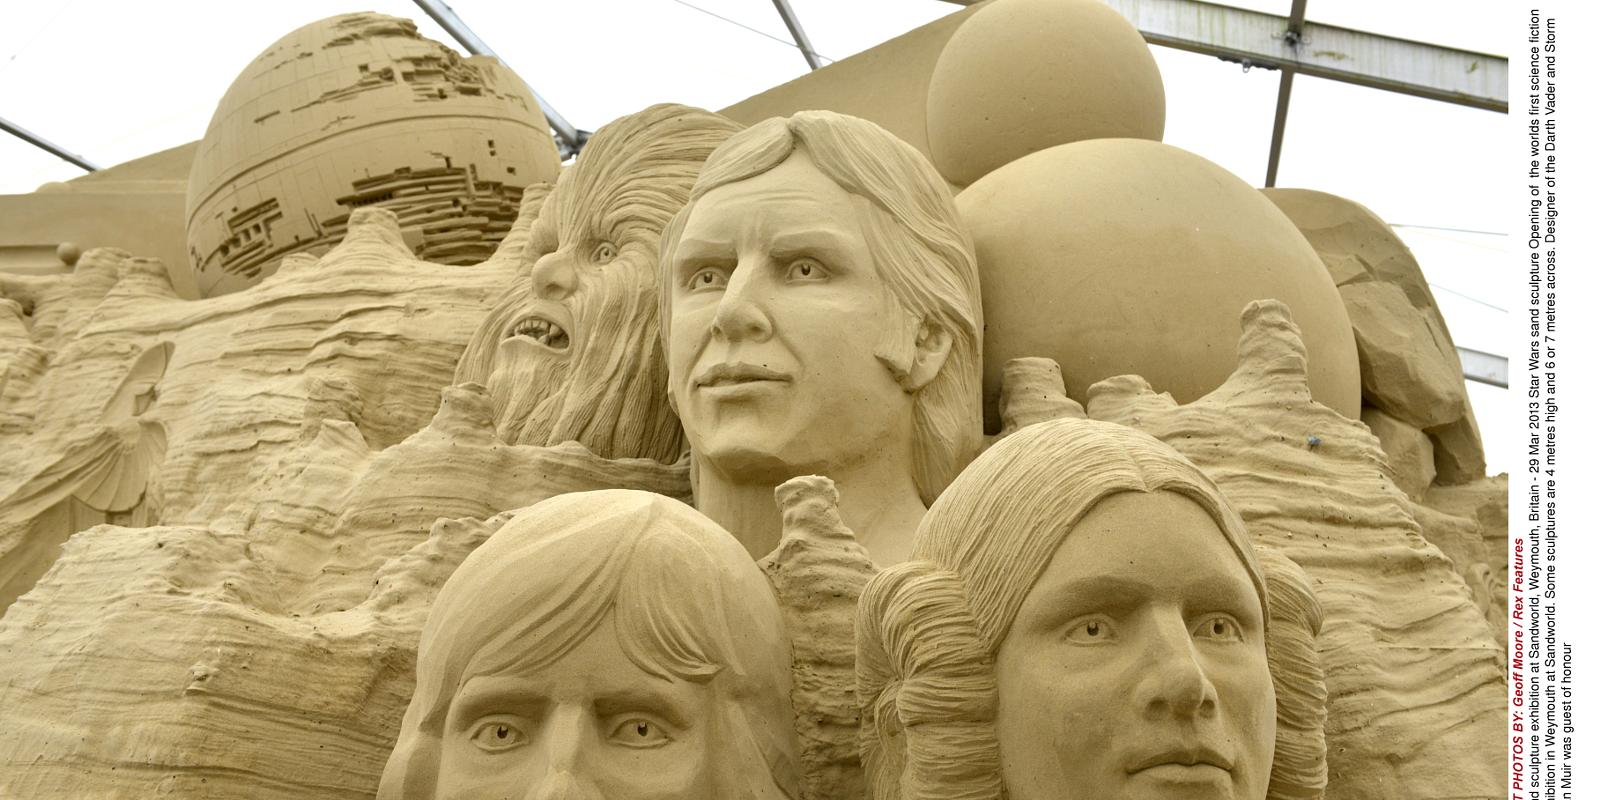 star wars sand sculptures in weymouth gallery